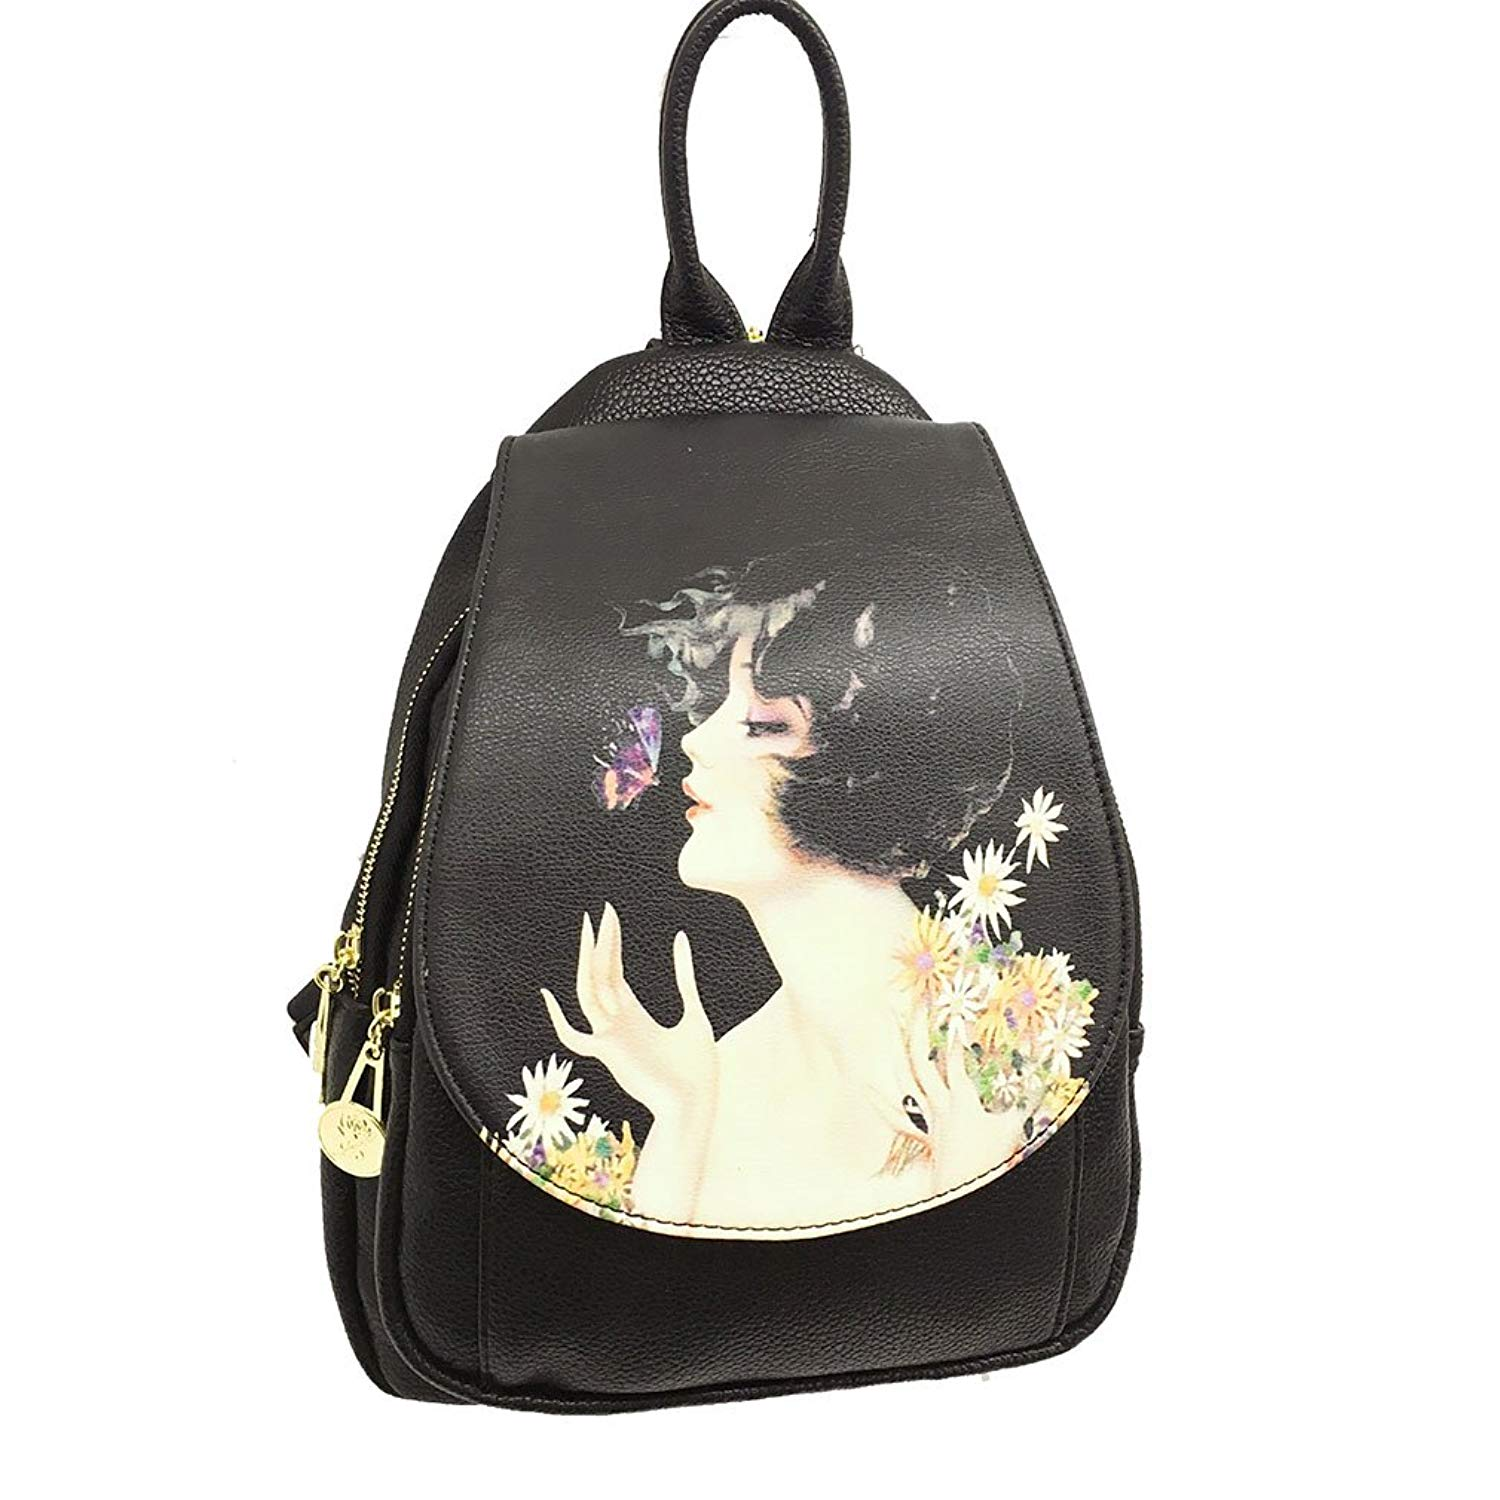 ff7826f2ac79 Cheap Girls Bag Pack, find Girls Bag Pack deals on line at Alibaba.com